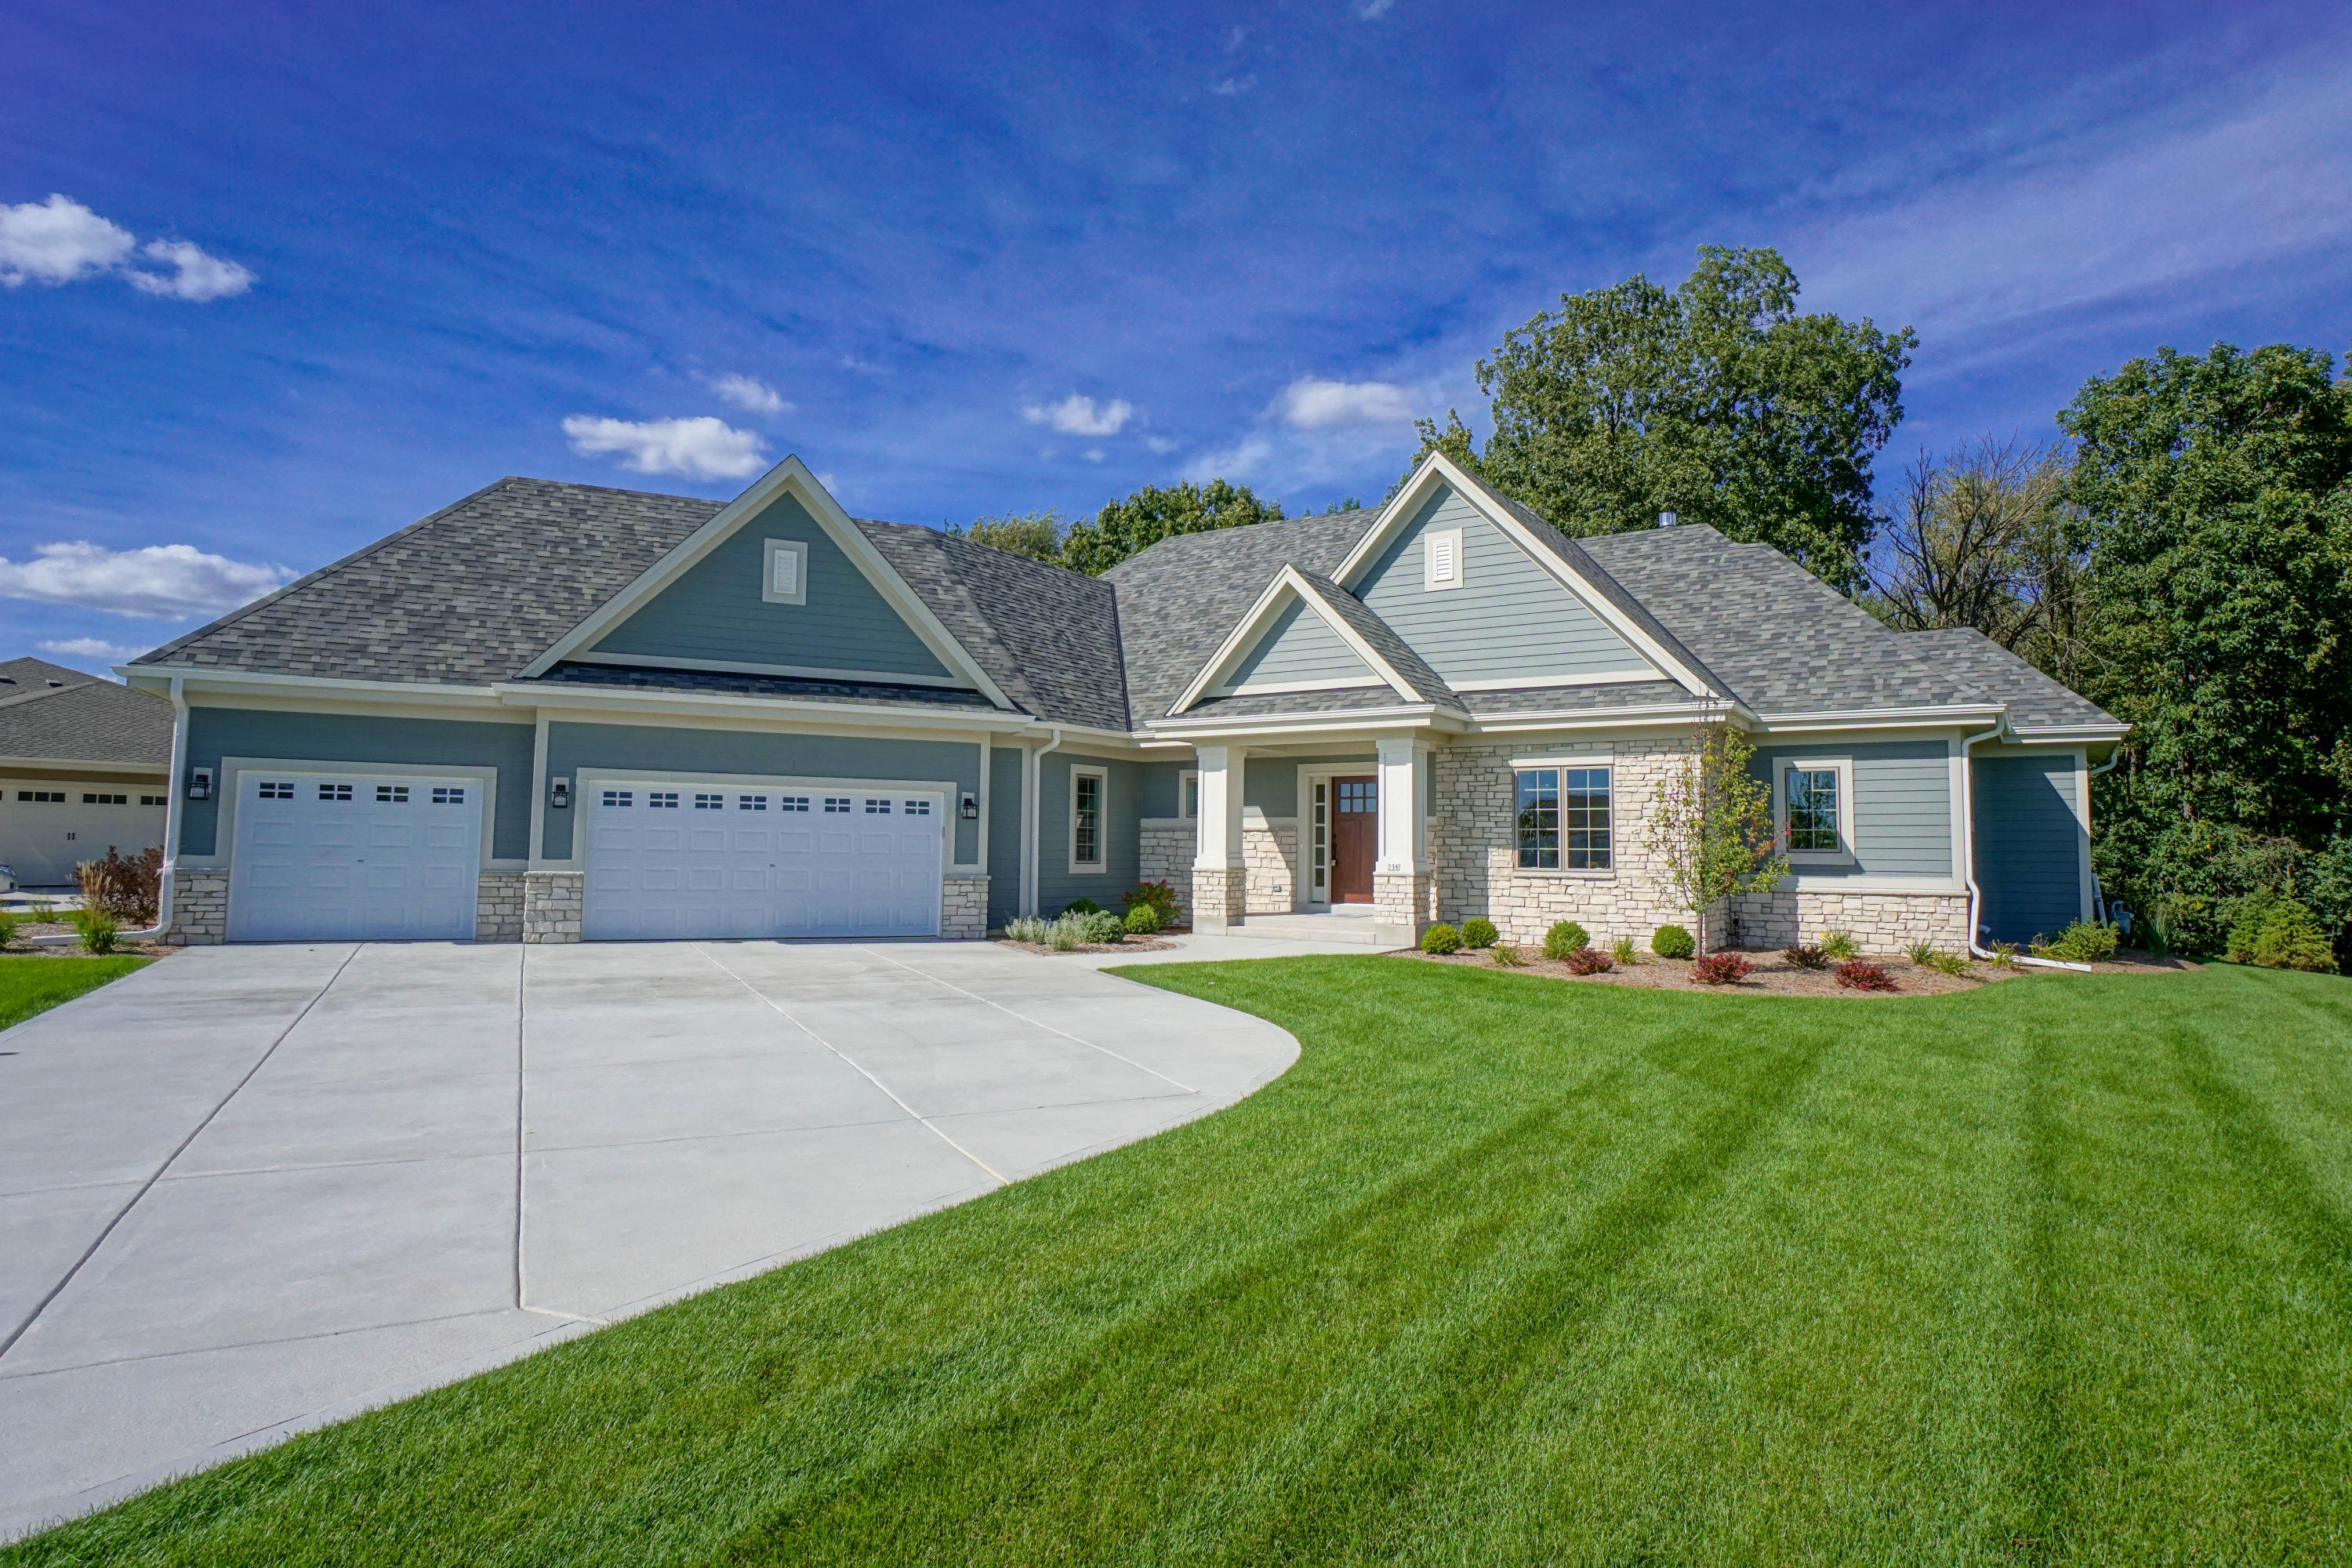 236 Four Winds Ct, Hartland, Wisconsin 53029, 4 Bedrooms Bedrooms, 12 Rooms Rooms,3 BathroomsBathrooms,Single-Family,For Sale,Four Winds Ct,1661212